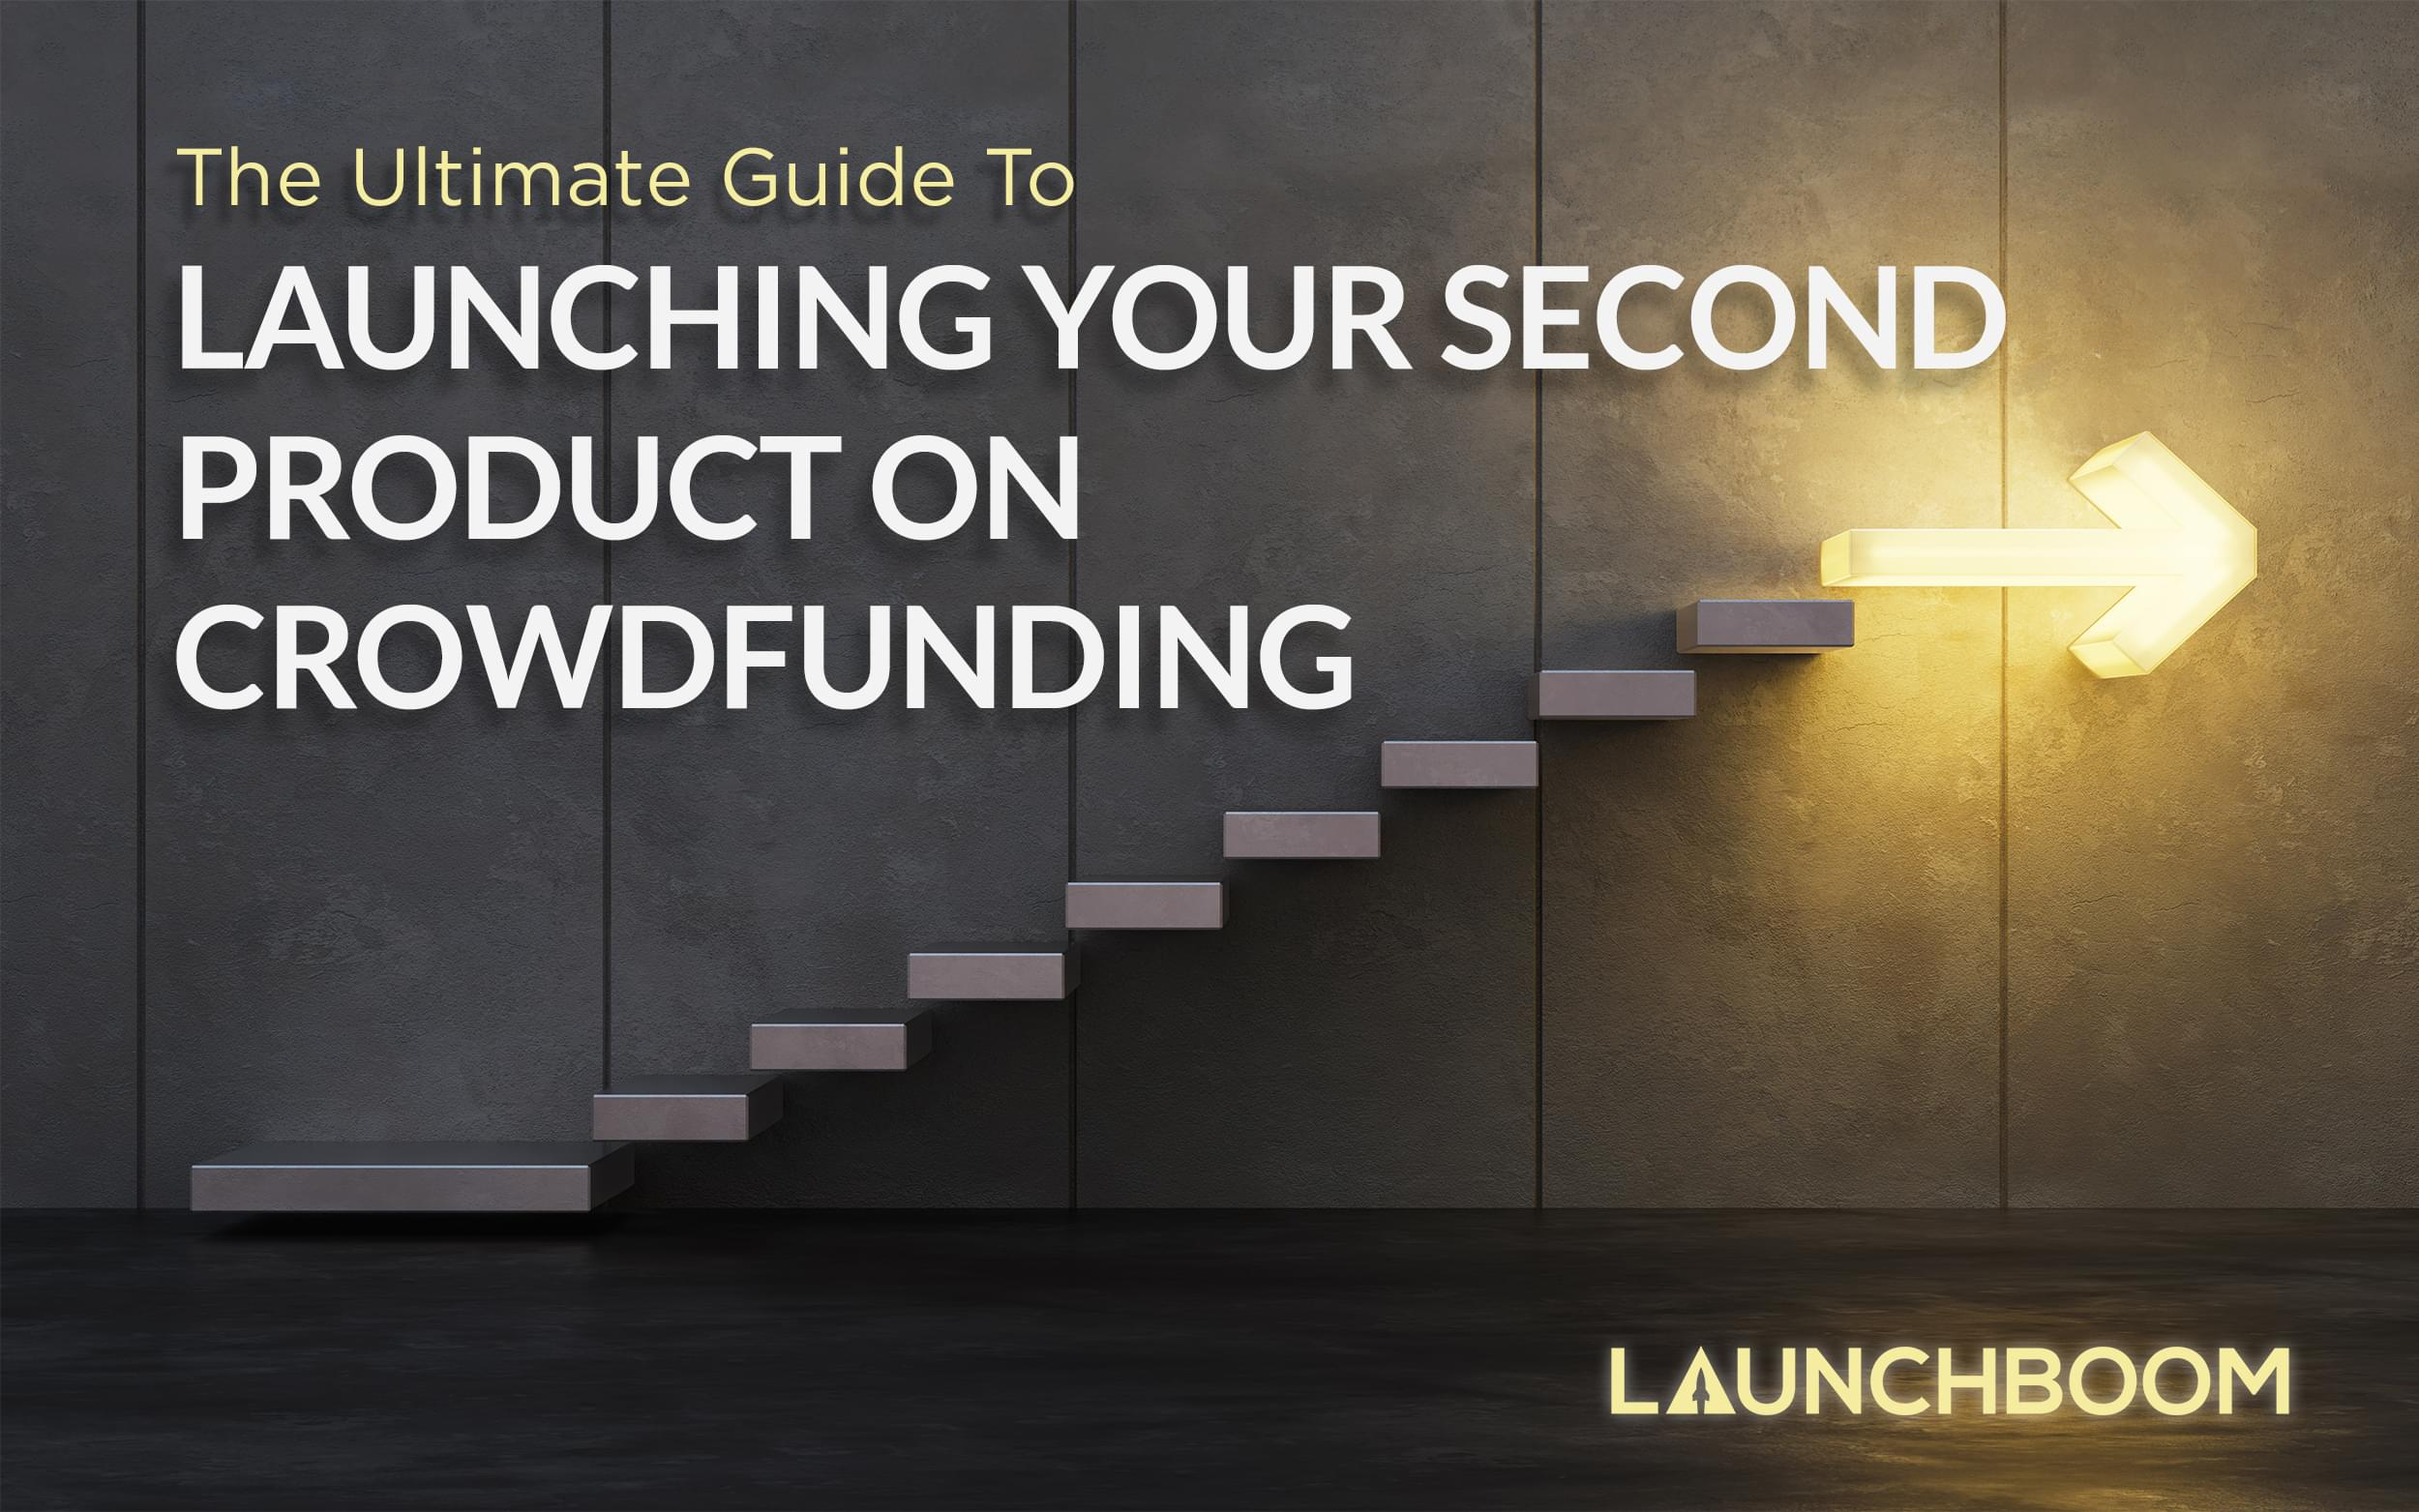 Crowdfunding again: Launching your second crowdfunding project